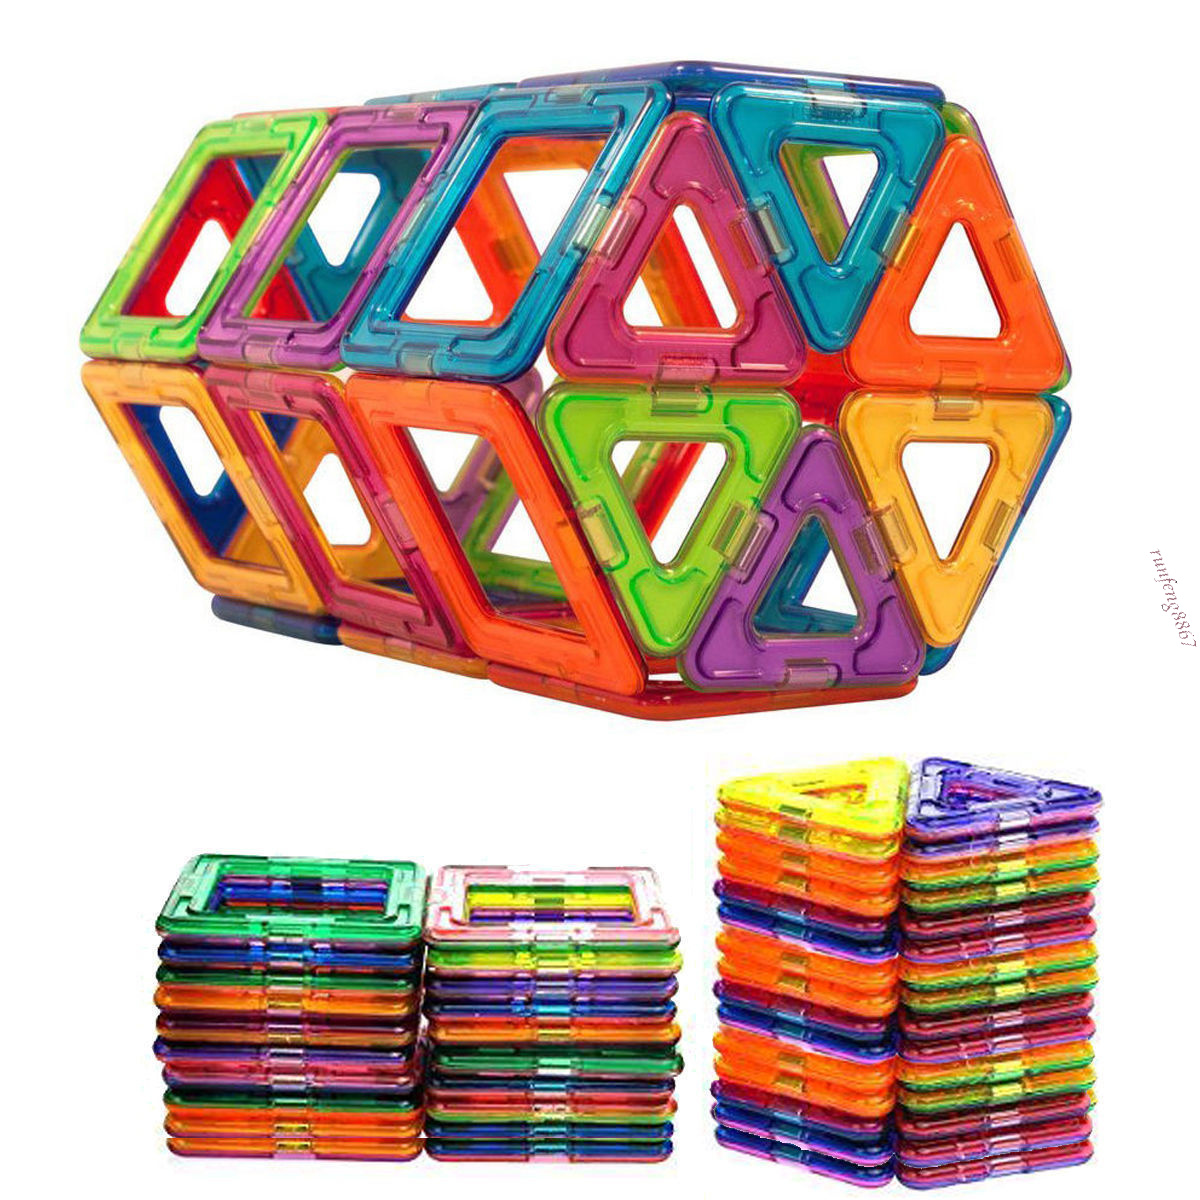 Magnetic Toys For Toddlers : Pcs all magnetic building blocks construction children